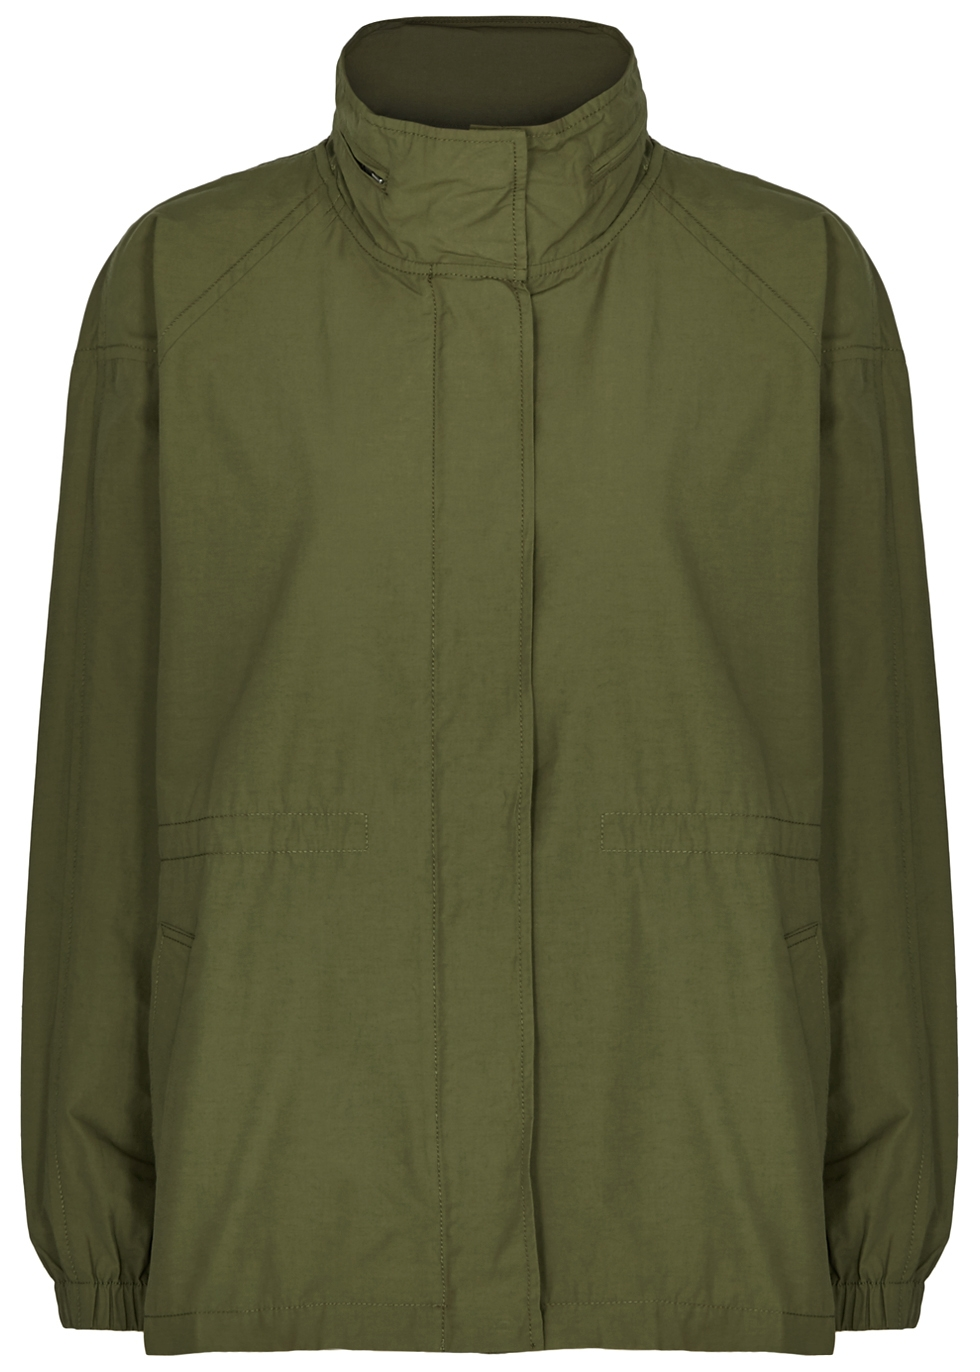 OLIVE HOODED SHELL JACKET